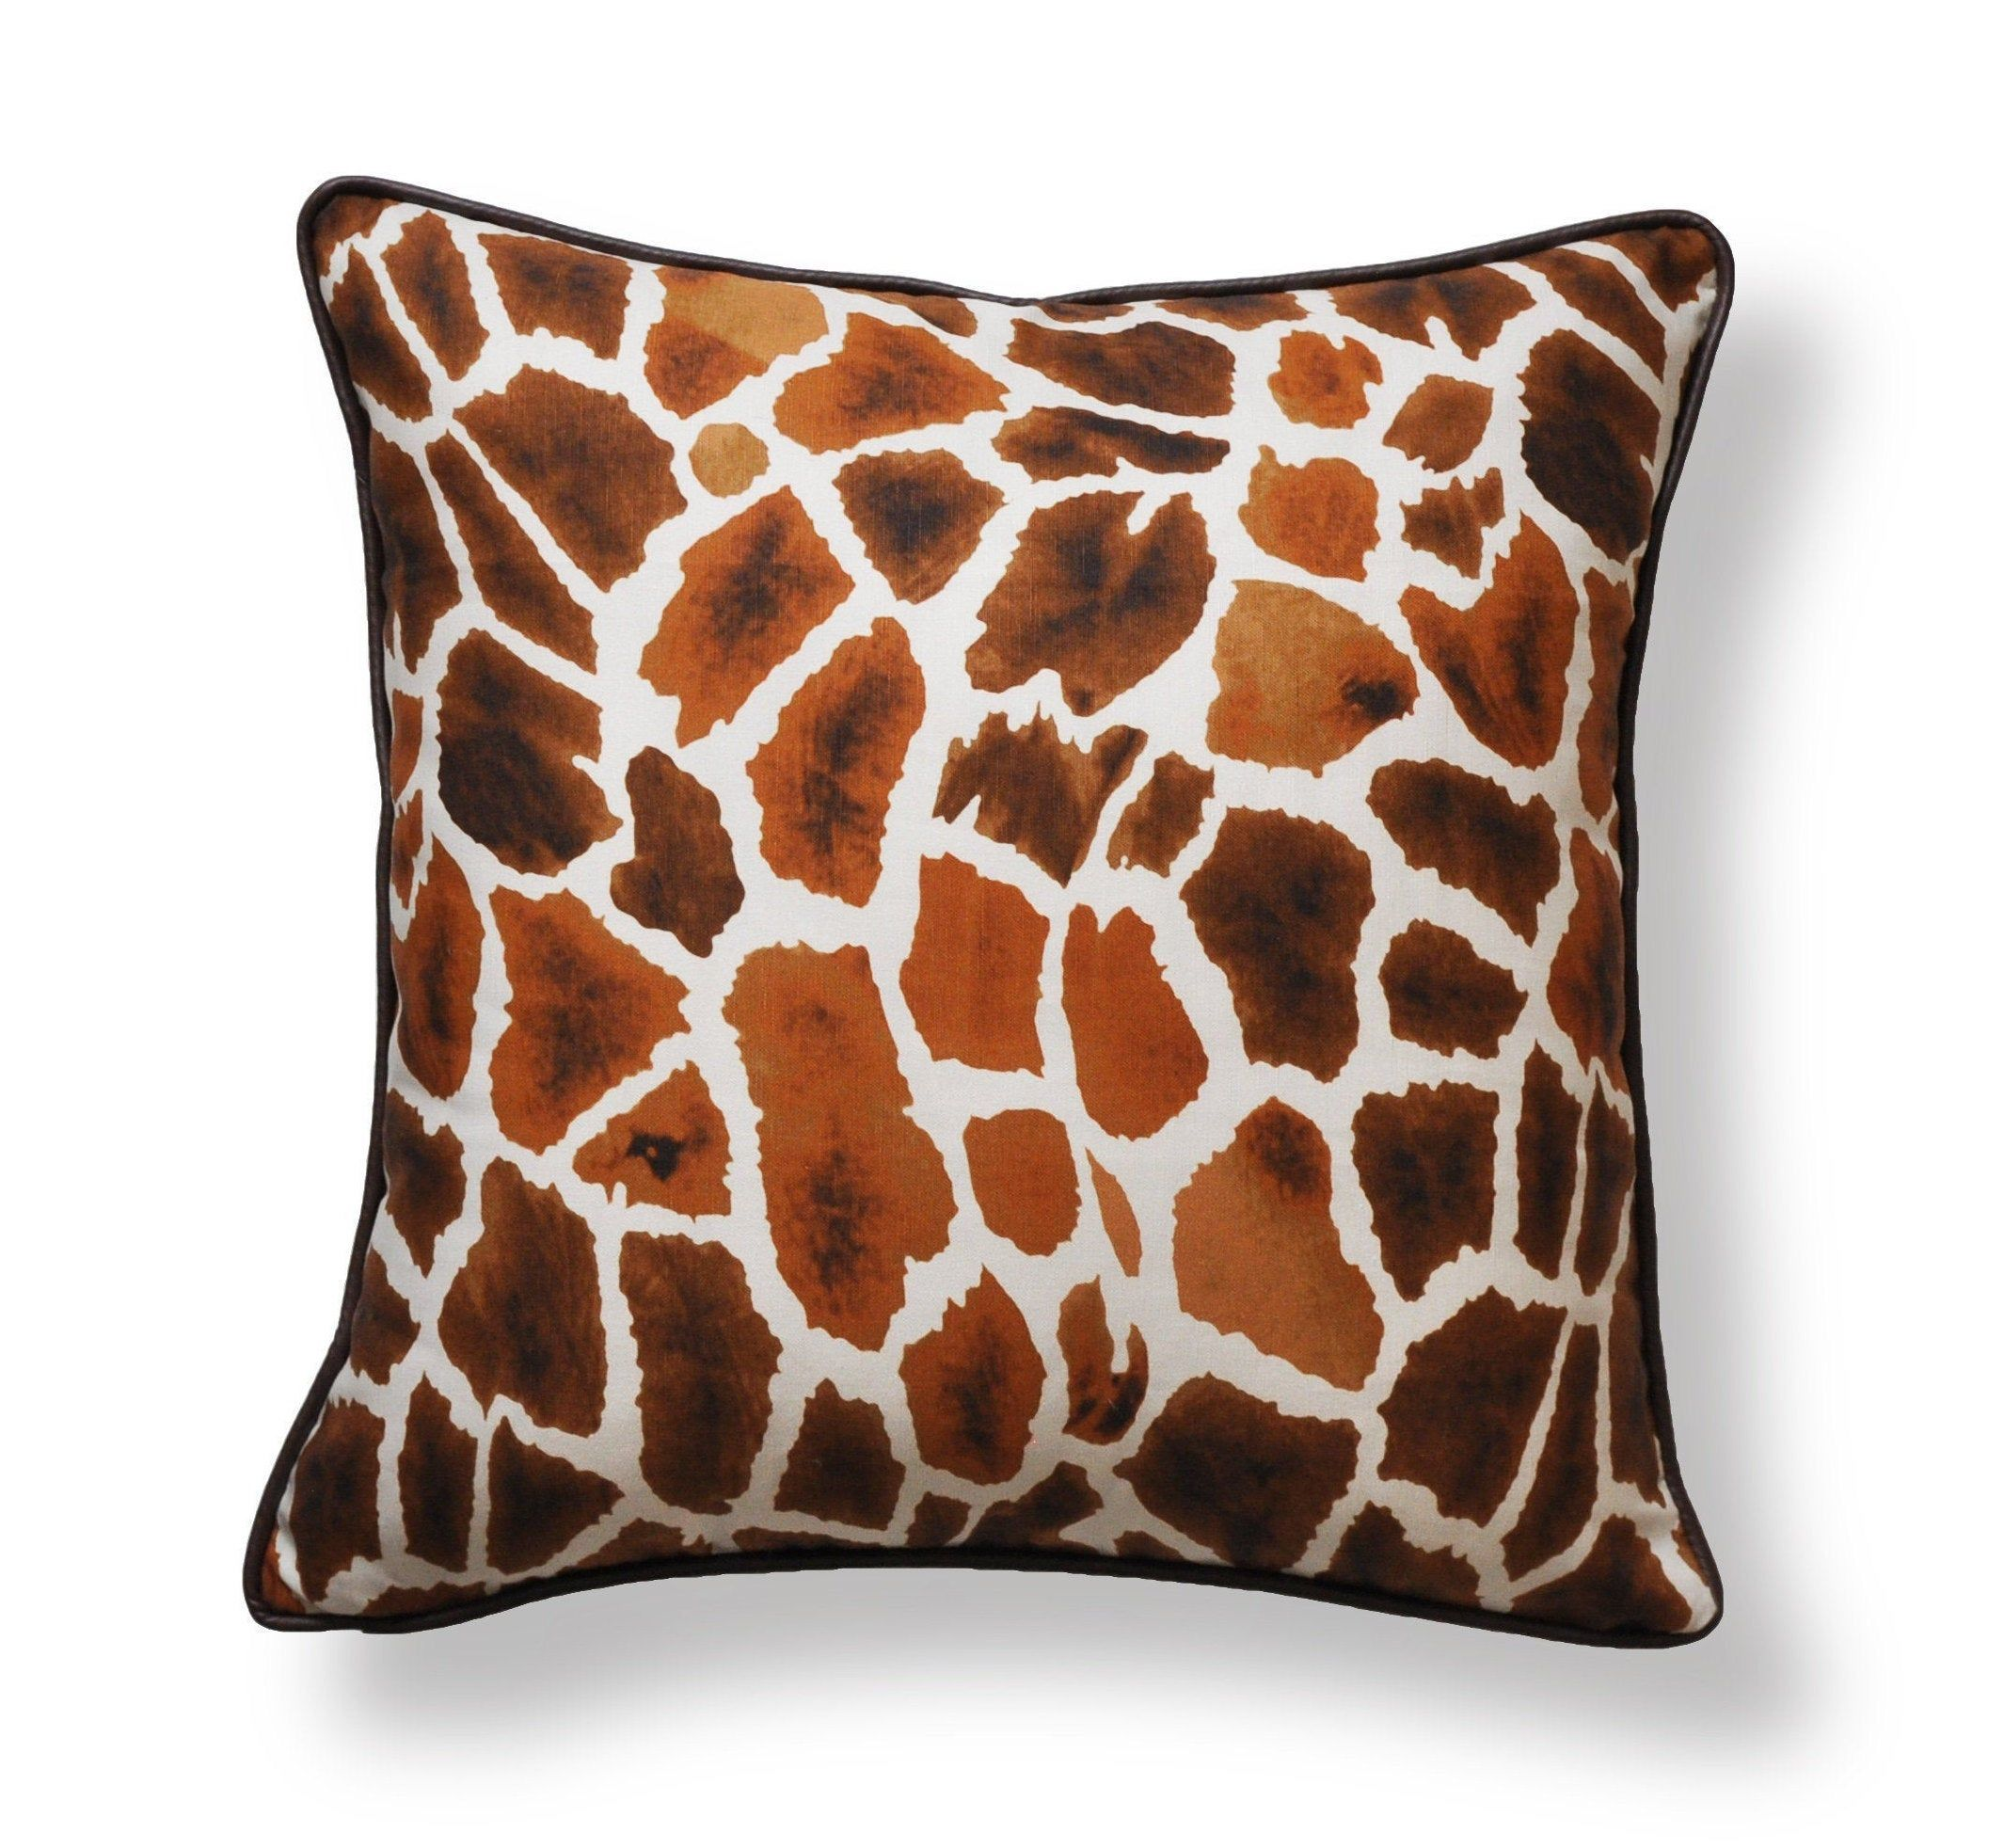 Set Of Two Thibaut Pillow Covers Giraffe Print Covers Etsy In 2020 Animal Print Pillows Linen Pillow Covers Pillows